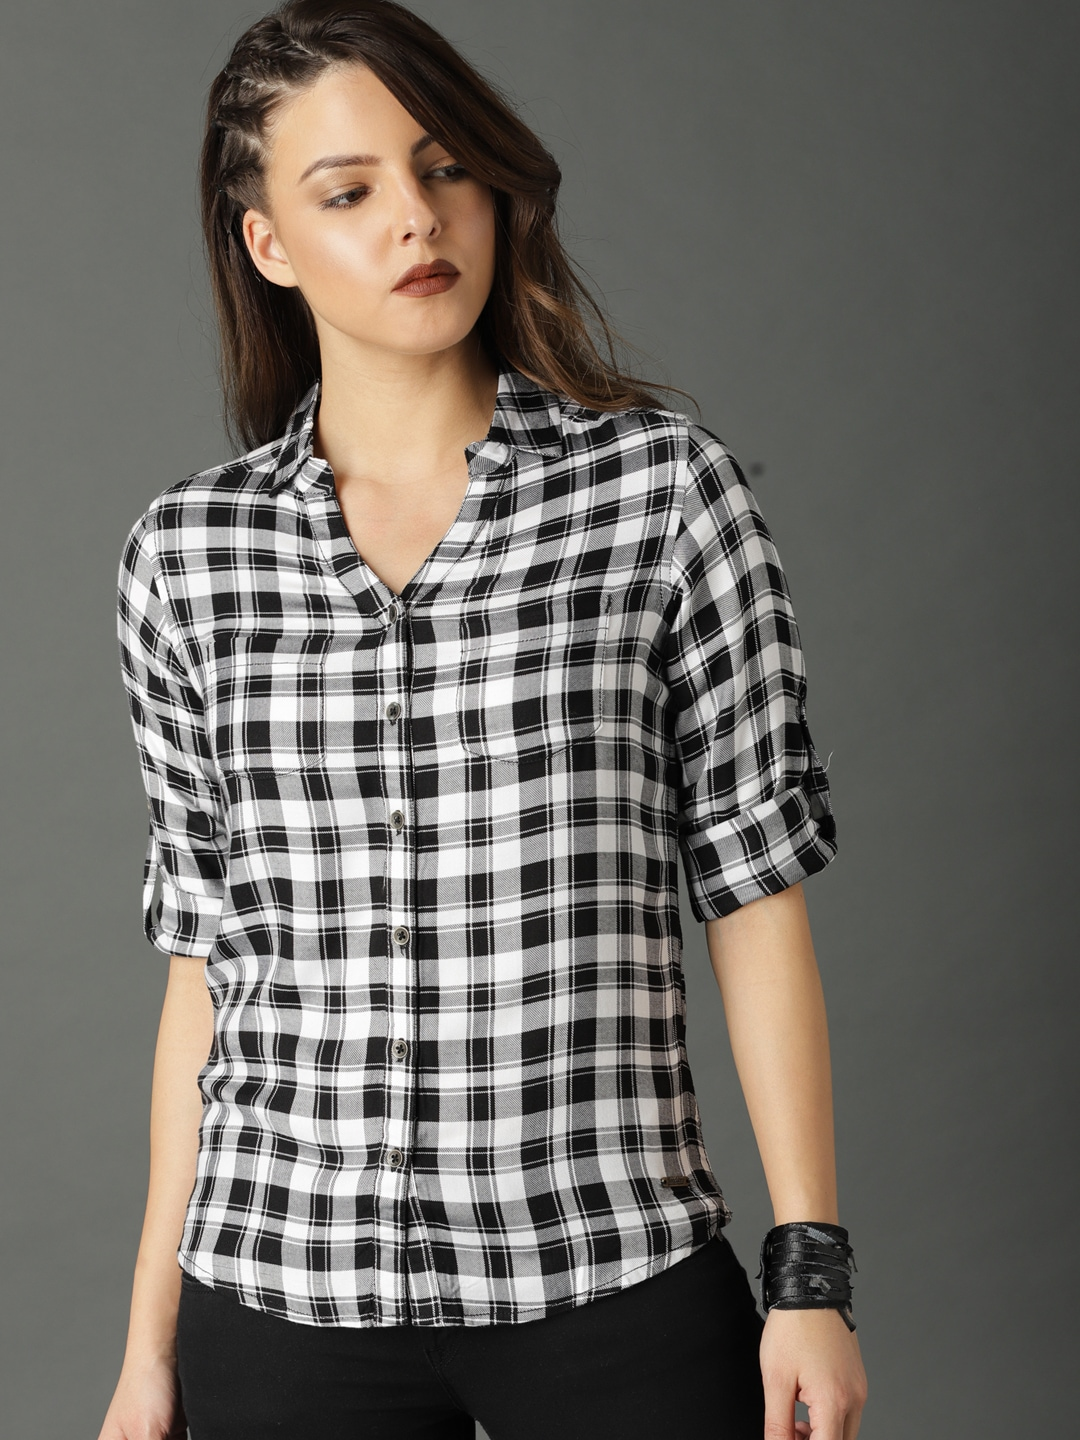 94f69557 Women Check Shirt Shirts Tunics - Buy Women Check Shirt Shirts Tunics  online in India